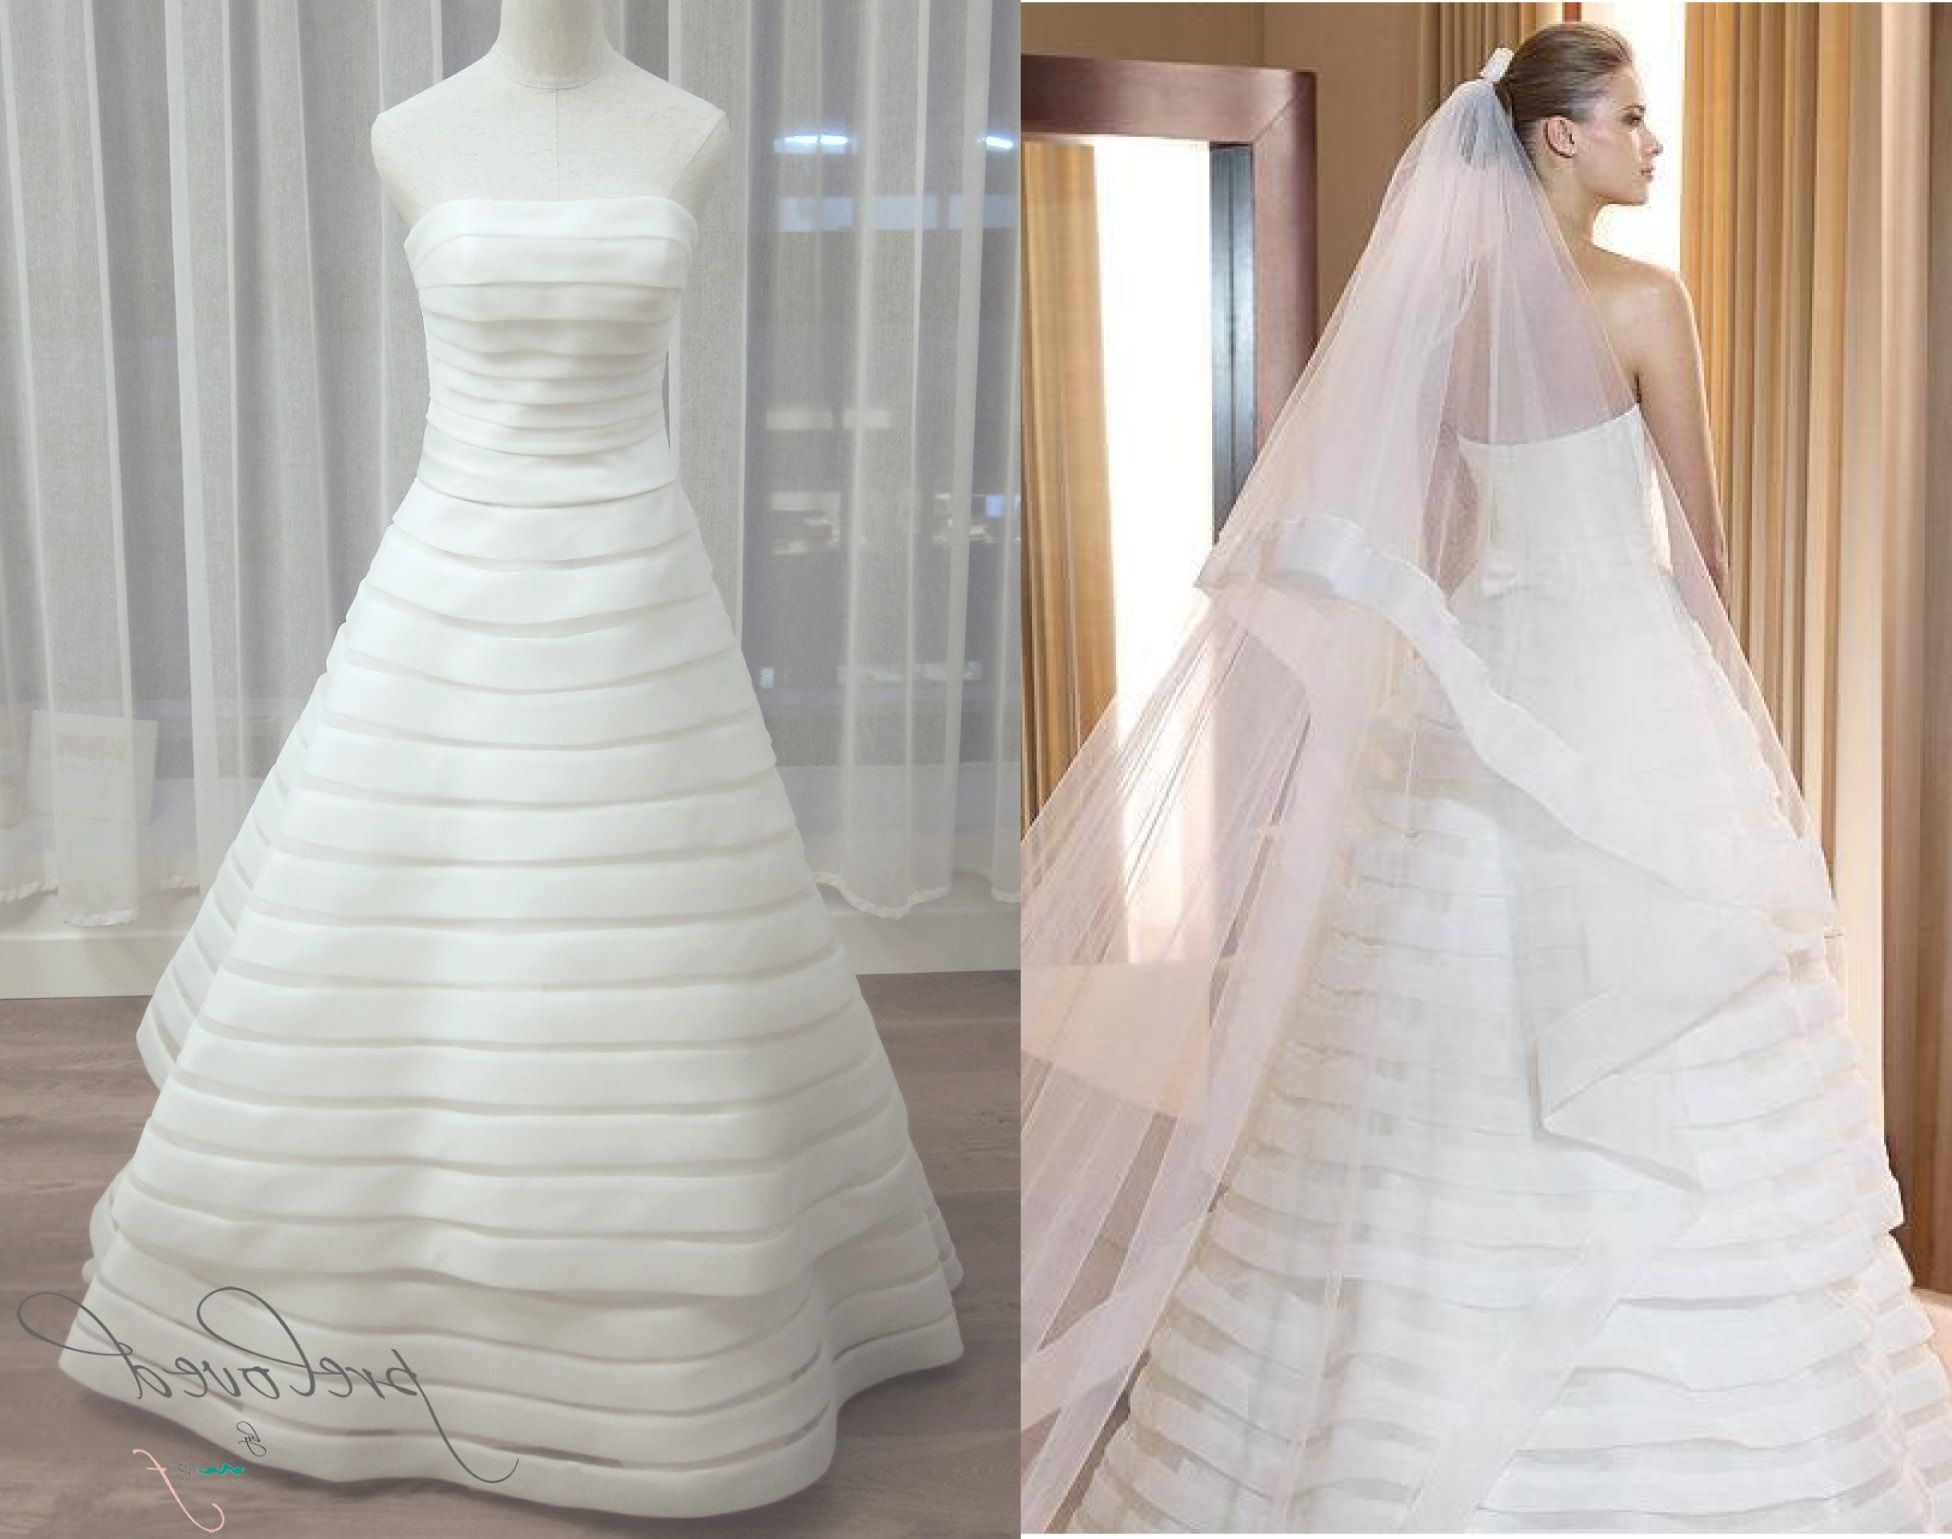 2nd hand wedding dresses  Selling Nd Hand Wedding Dress  Wedding Dress  Pinterest  Wedding